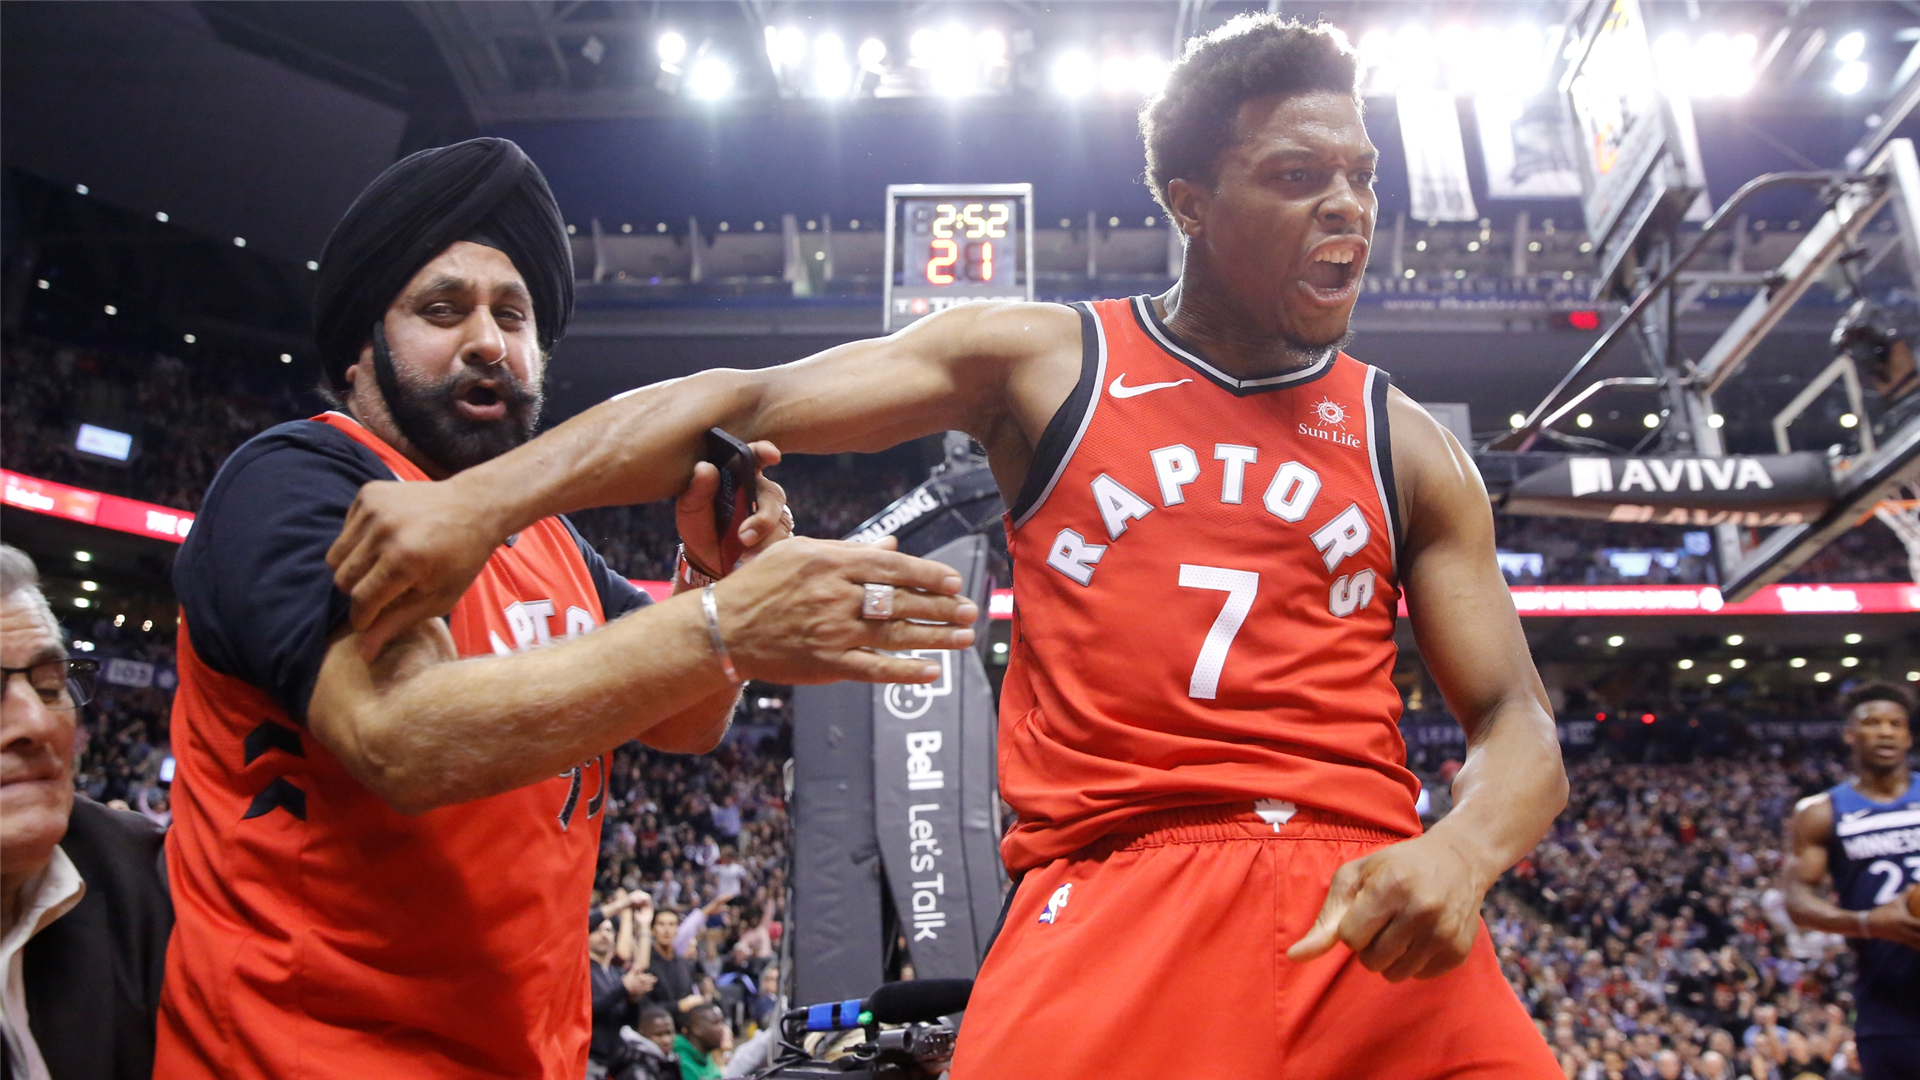 Raptors News: Q&A: Raptors' Superfan Nav Bhatia Talks DeRozan's Return